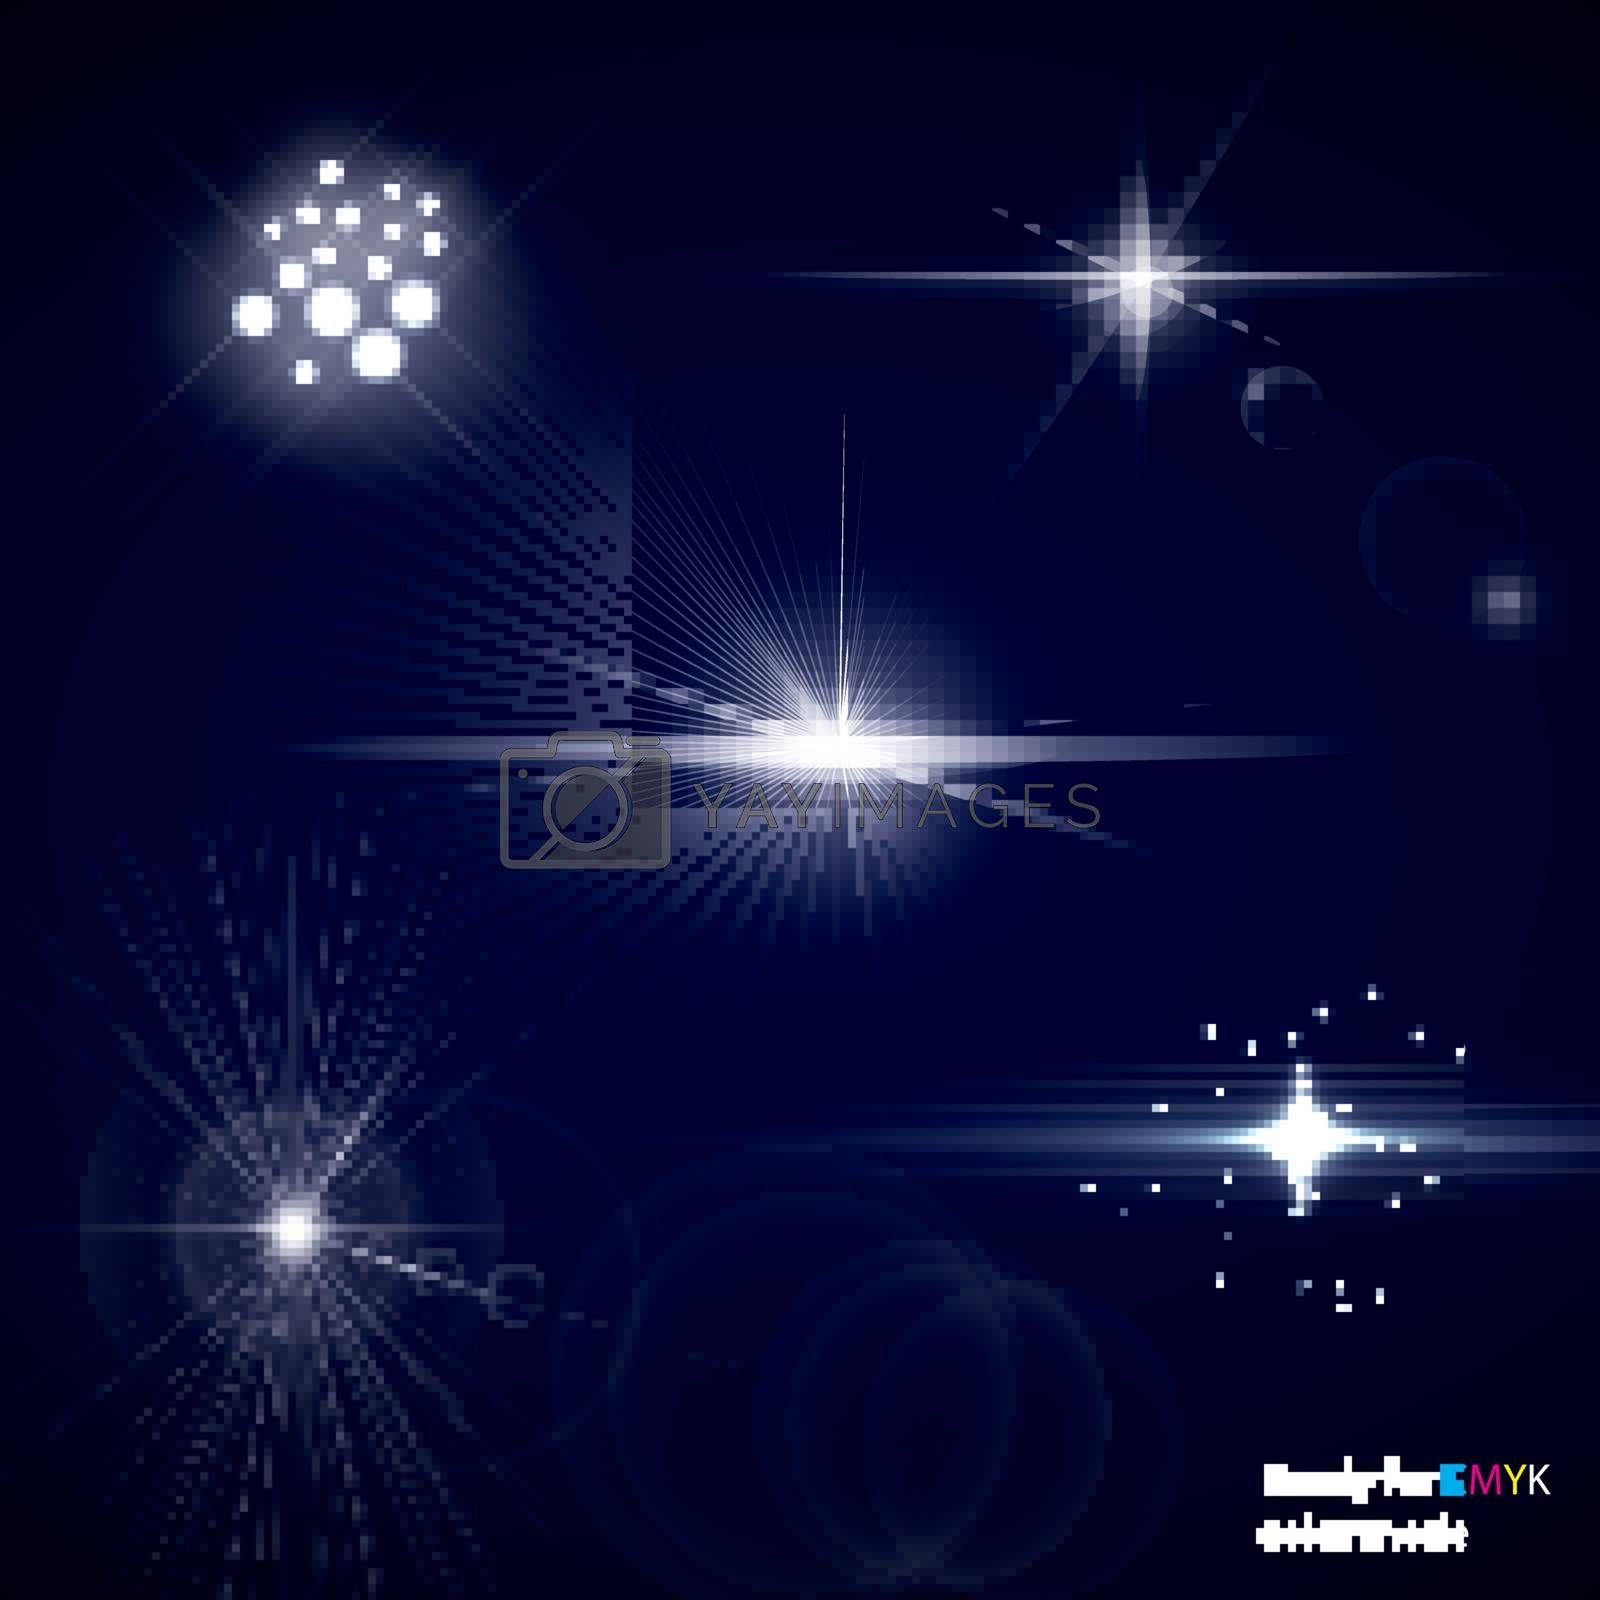 Set of transparent stars and sparkles elements ready for any background with screen or add blending modes. Vector illustration, CMYK color mode